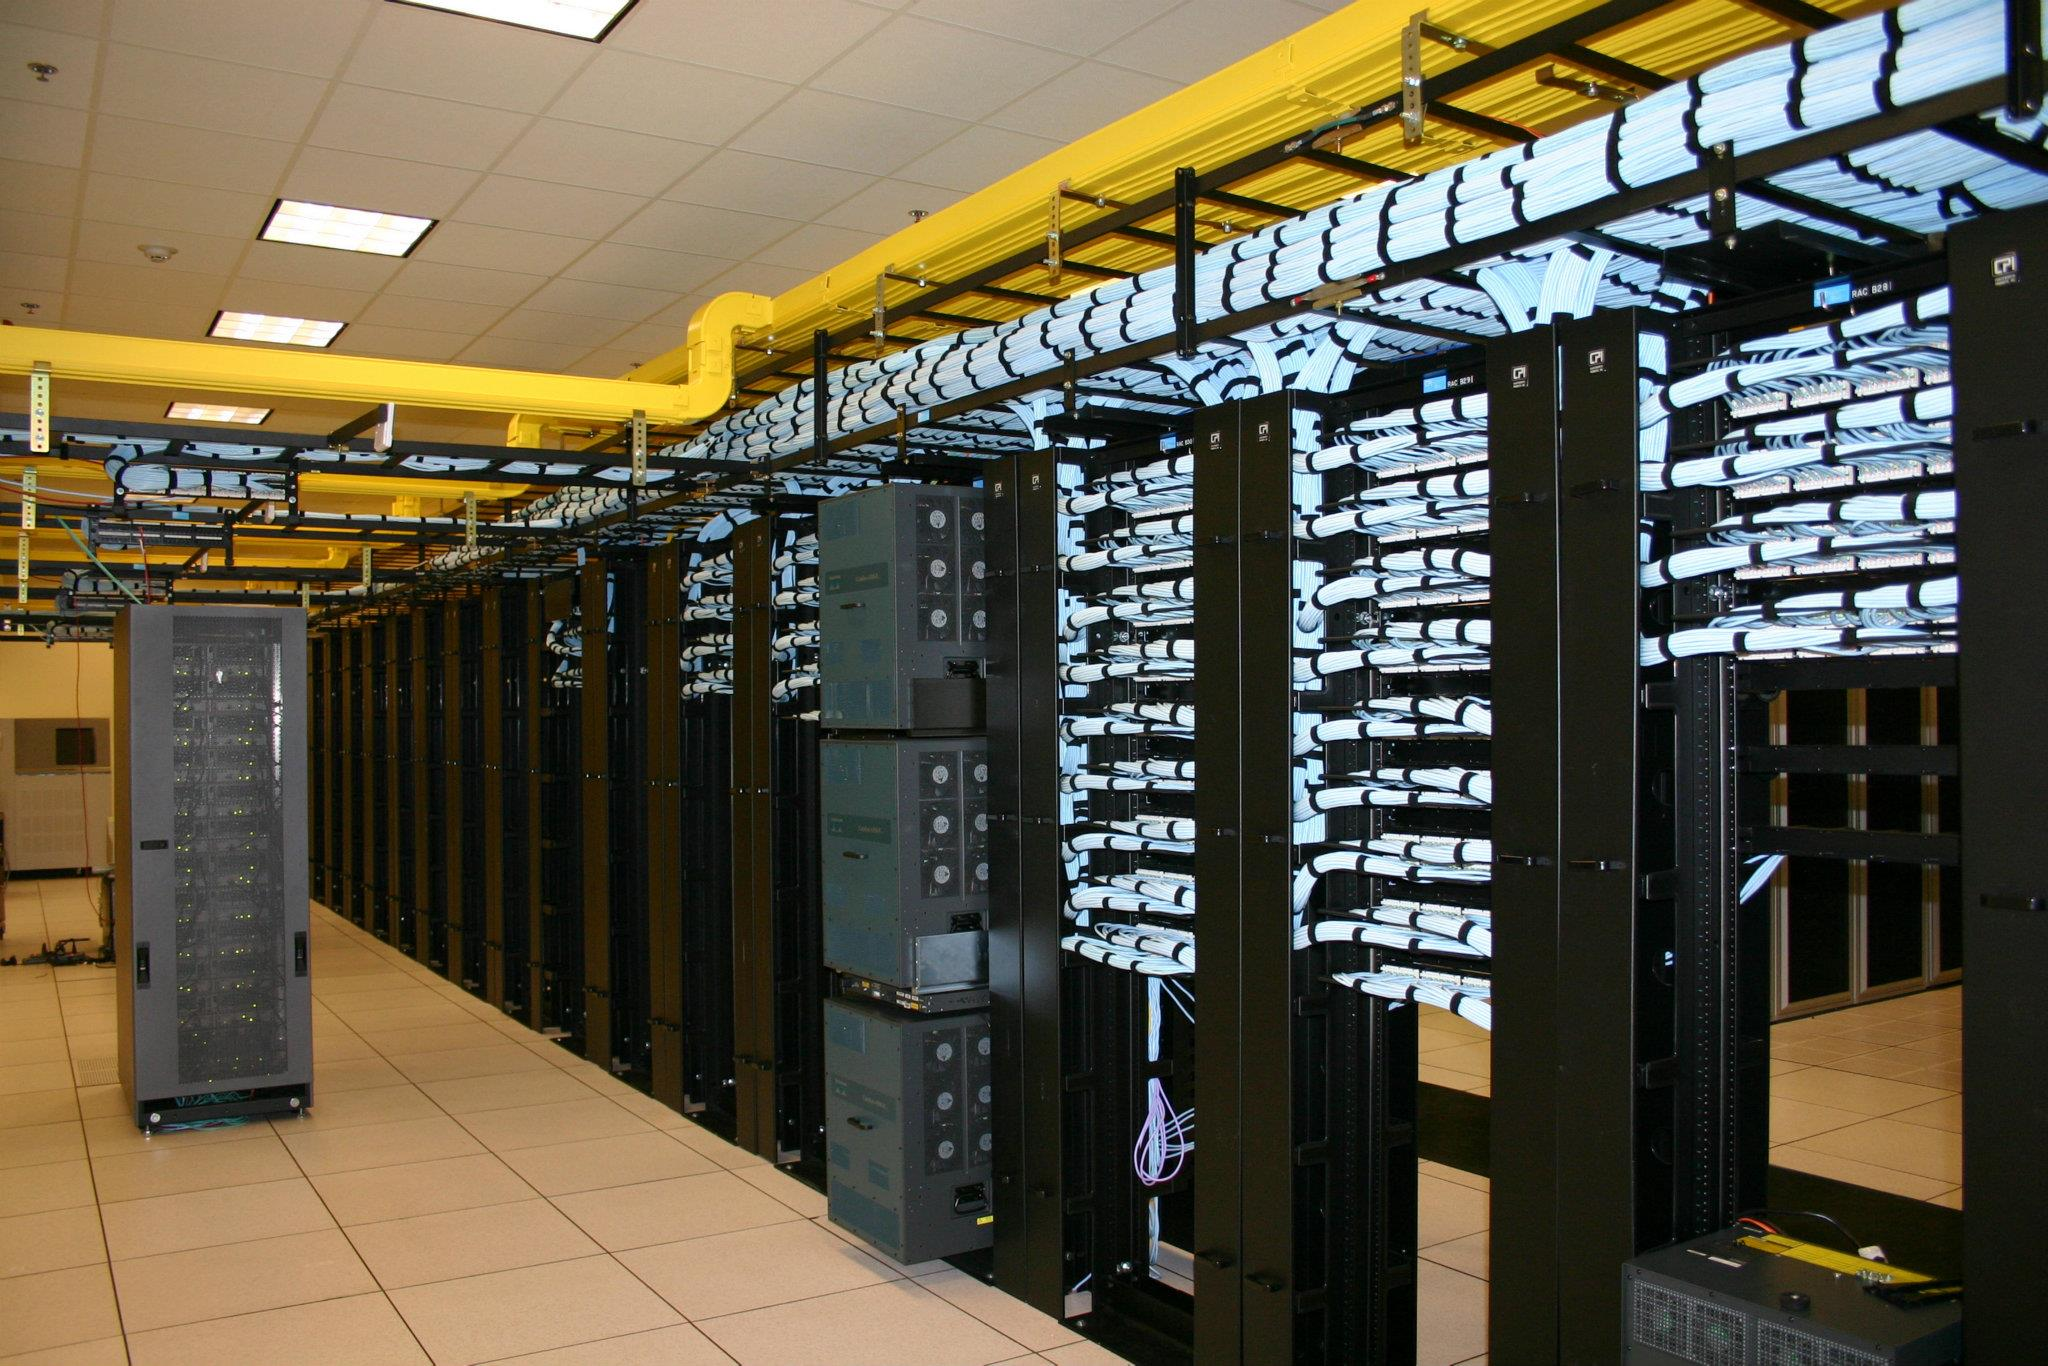 Interface Network Technology Structured Cabling Data Center Telephone Patch Panel Wiring Diagram